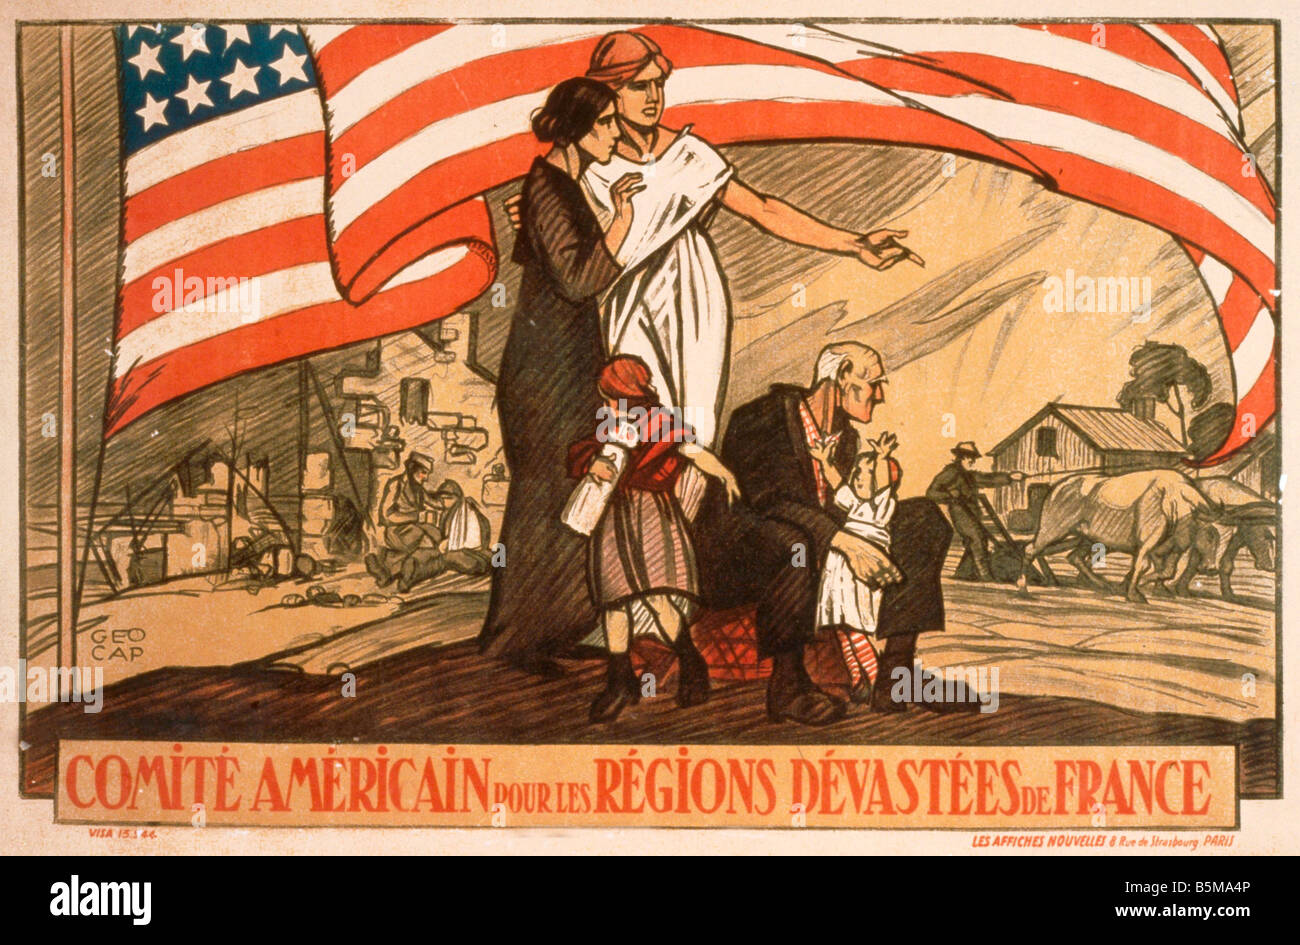 2 G55 P1 1917 51 WW I Americ War Relief in France Poster History World War I Propaganda Comite Americain pour les - Stock Image